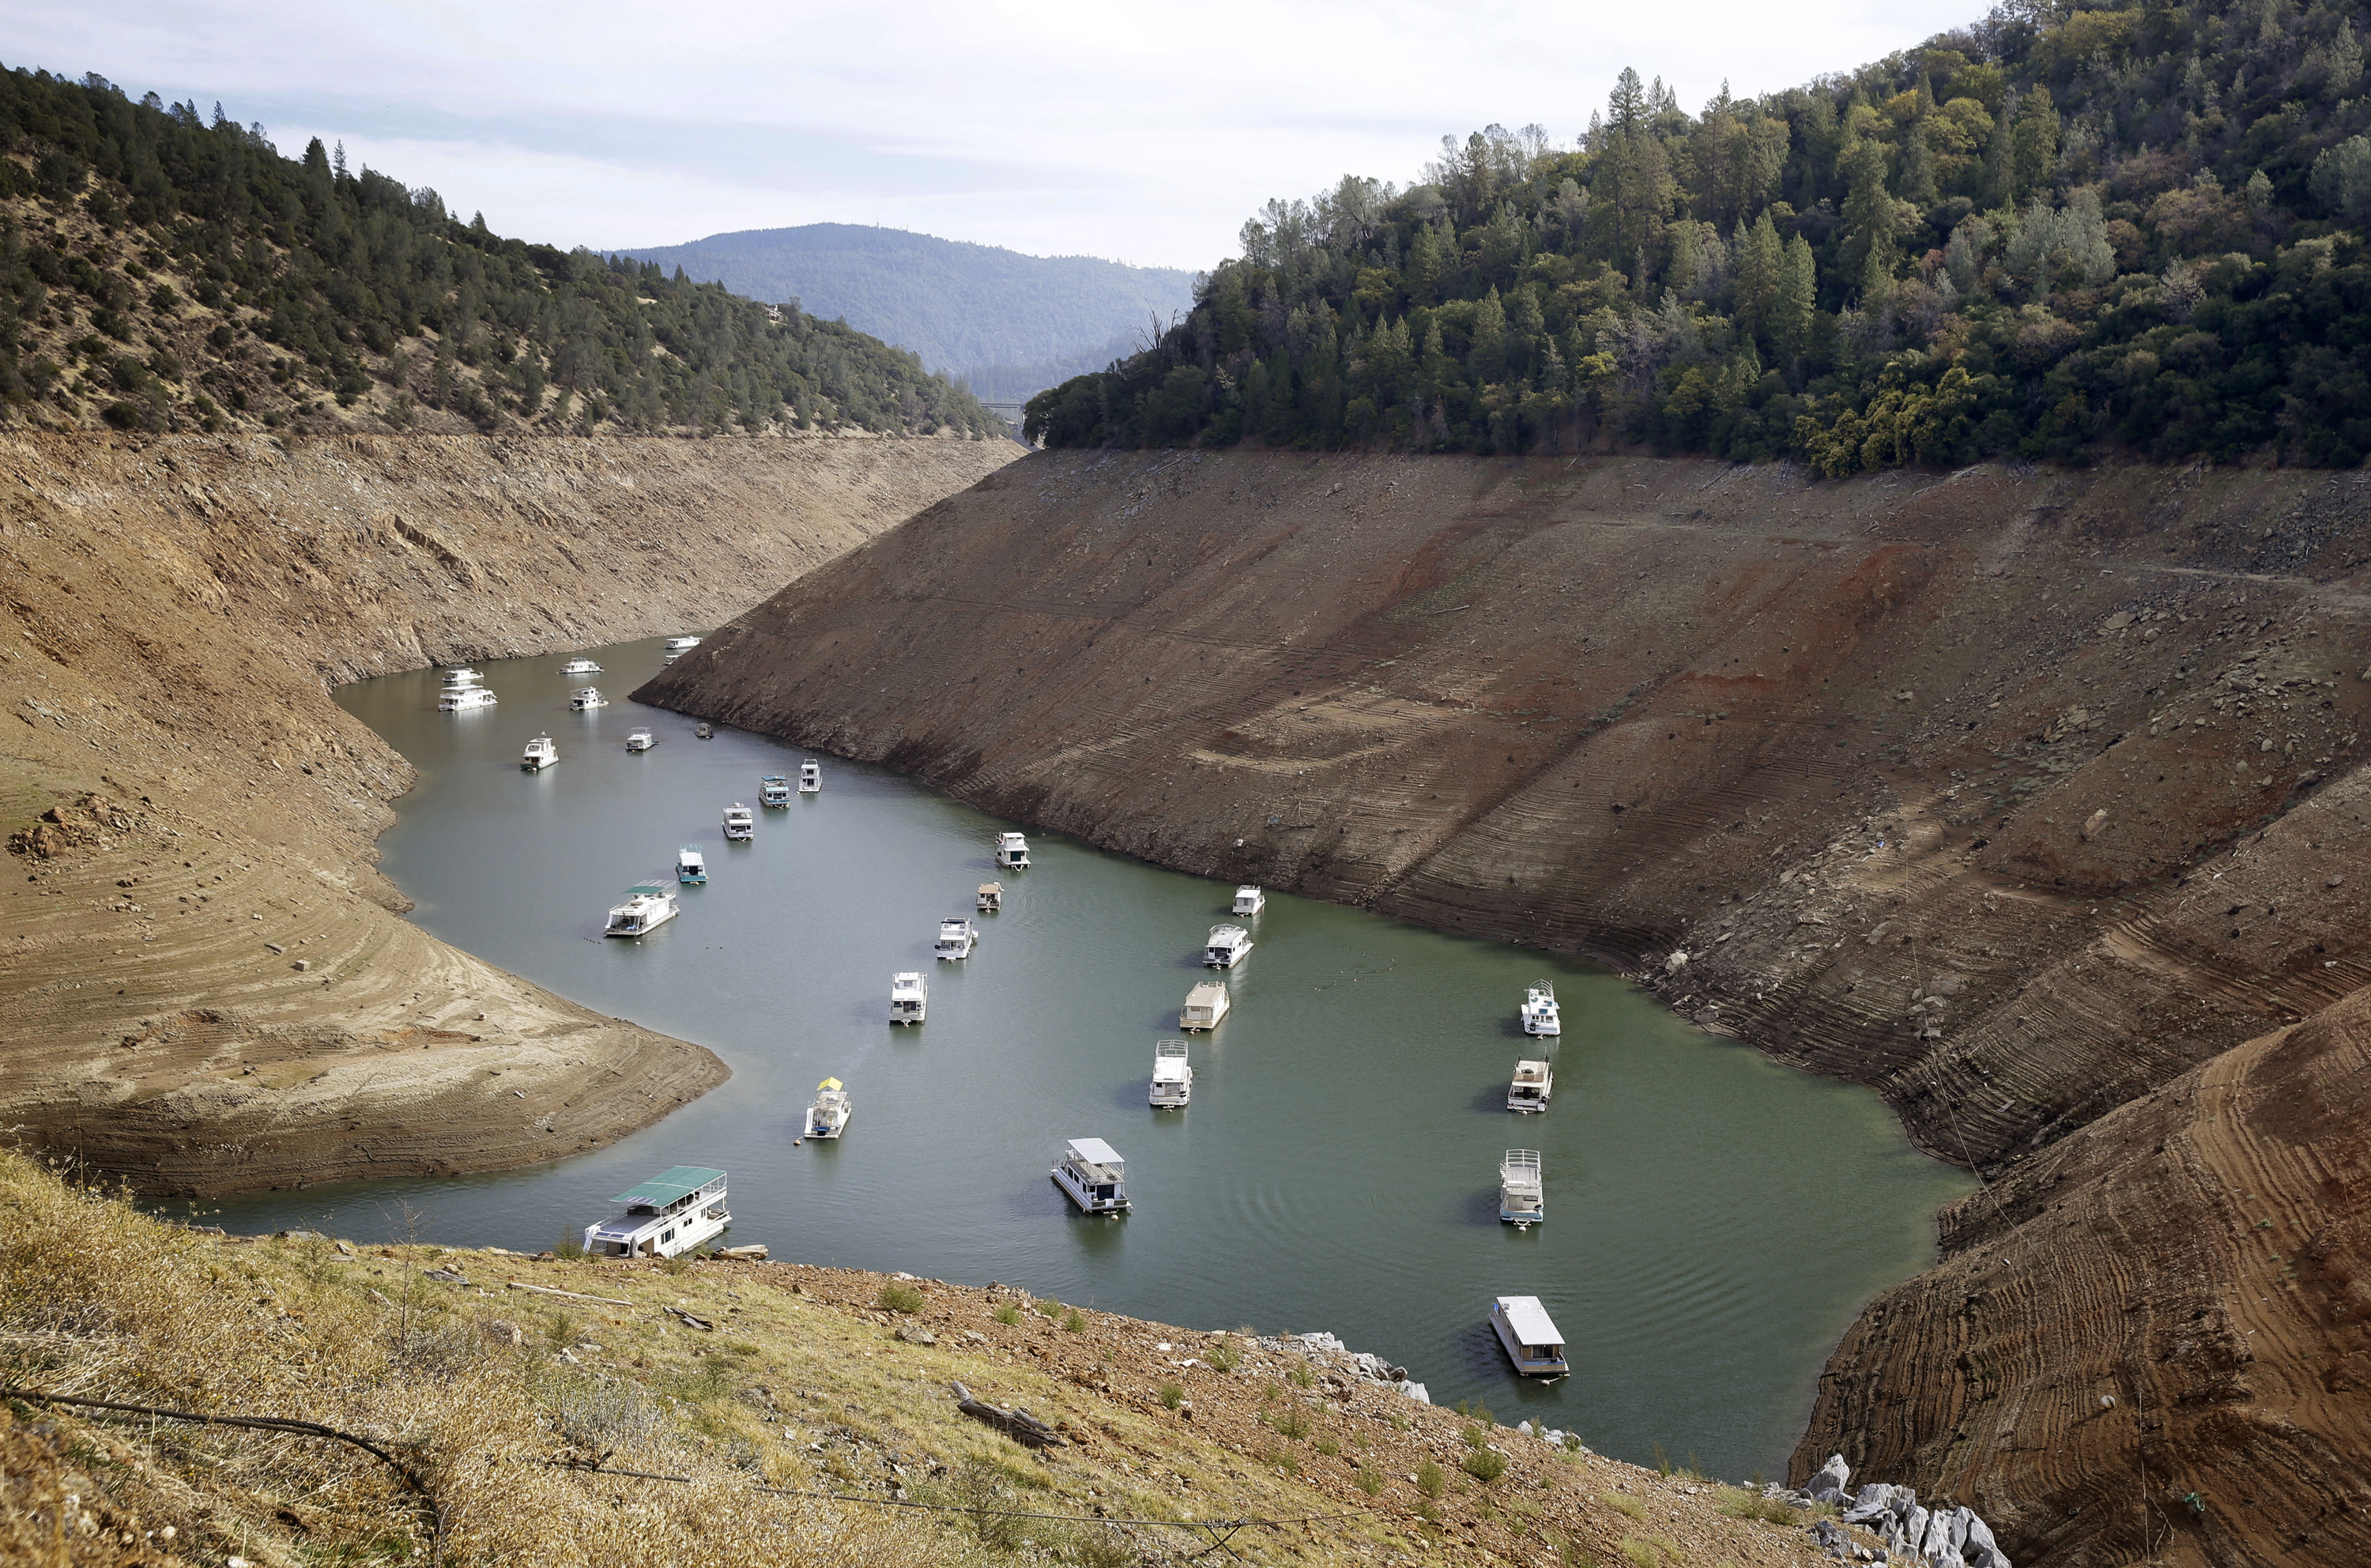 Houseboats float in the drought-lowered waters of Oroville Lake near Oroville, Calif., Oct. 30, 2014. Gov. Jerry Brown on April 1, 2015, ordered sweeping and unprecedented measures to save water in California.